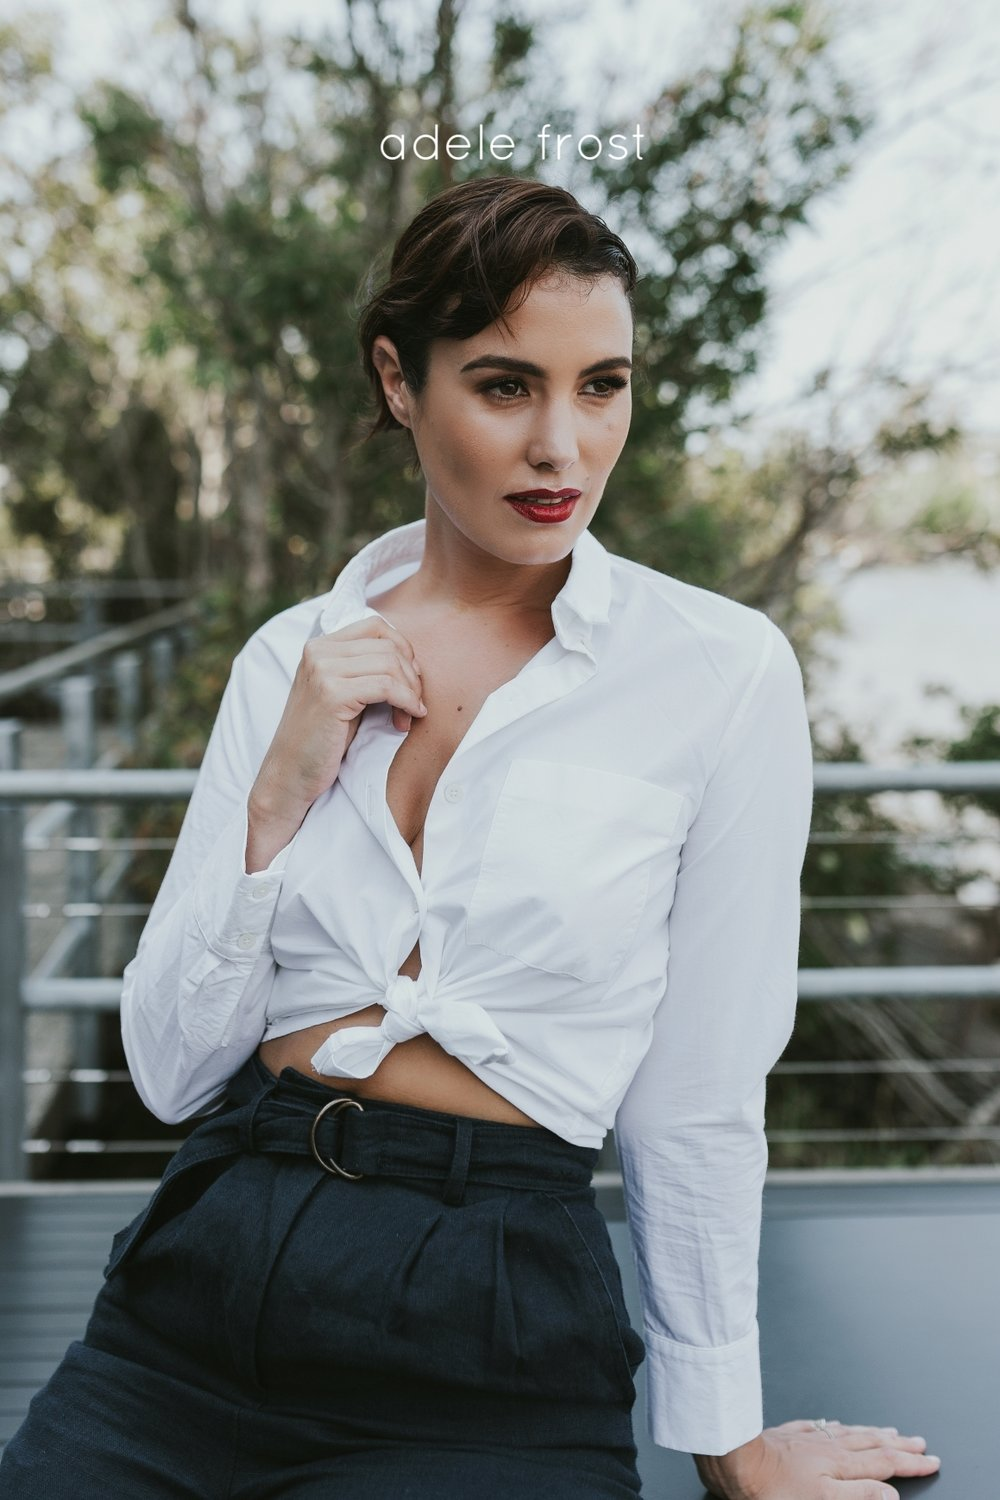 Model poses in crisp white collared shirt and red lipstick.